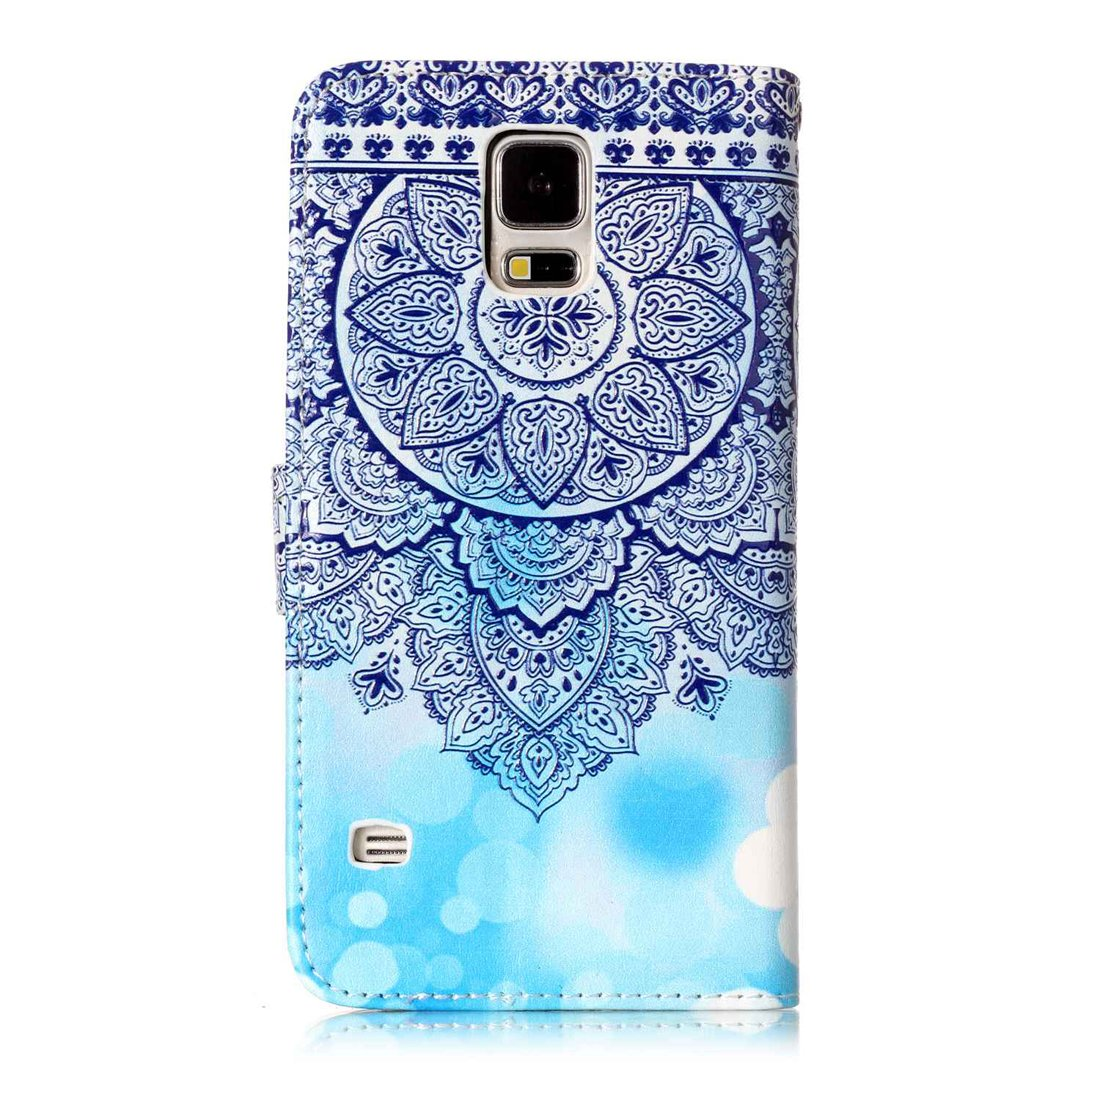 For Samsung Galaxy S5 Case with Card Slot,OYIME Colorful Painting Pattern Marble Mandala Relief Design Bookstyle Leather Wallet Holster Kickstand Function Full Body Protection Bumper Magnetic Closure Flip Cover with Wrist Lanyard and Screen Protector